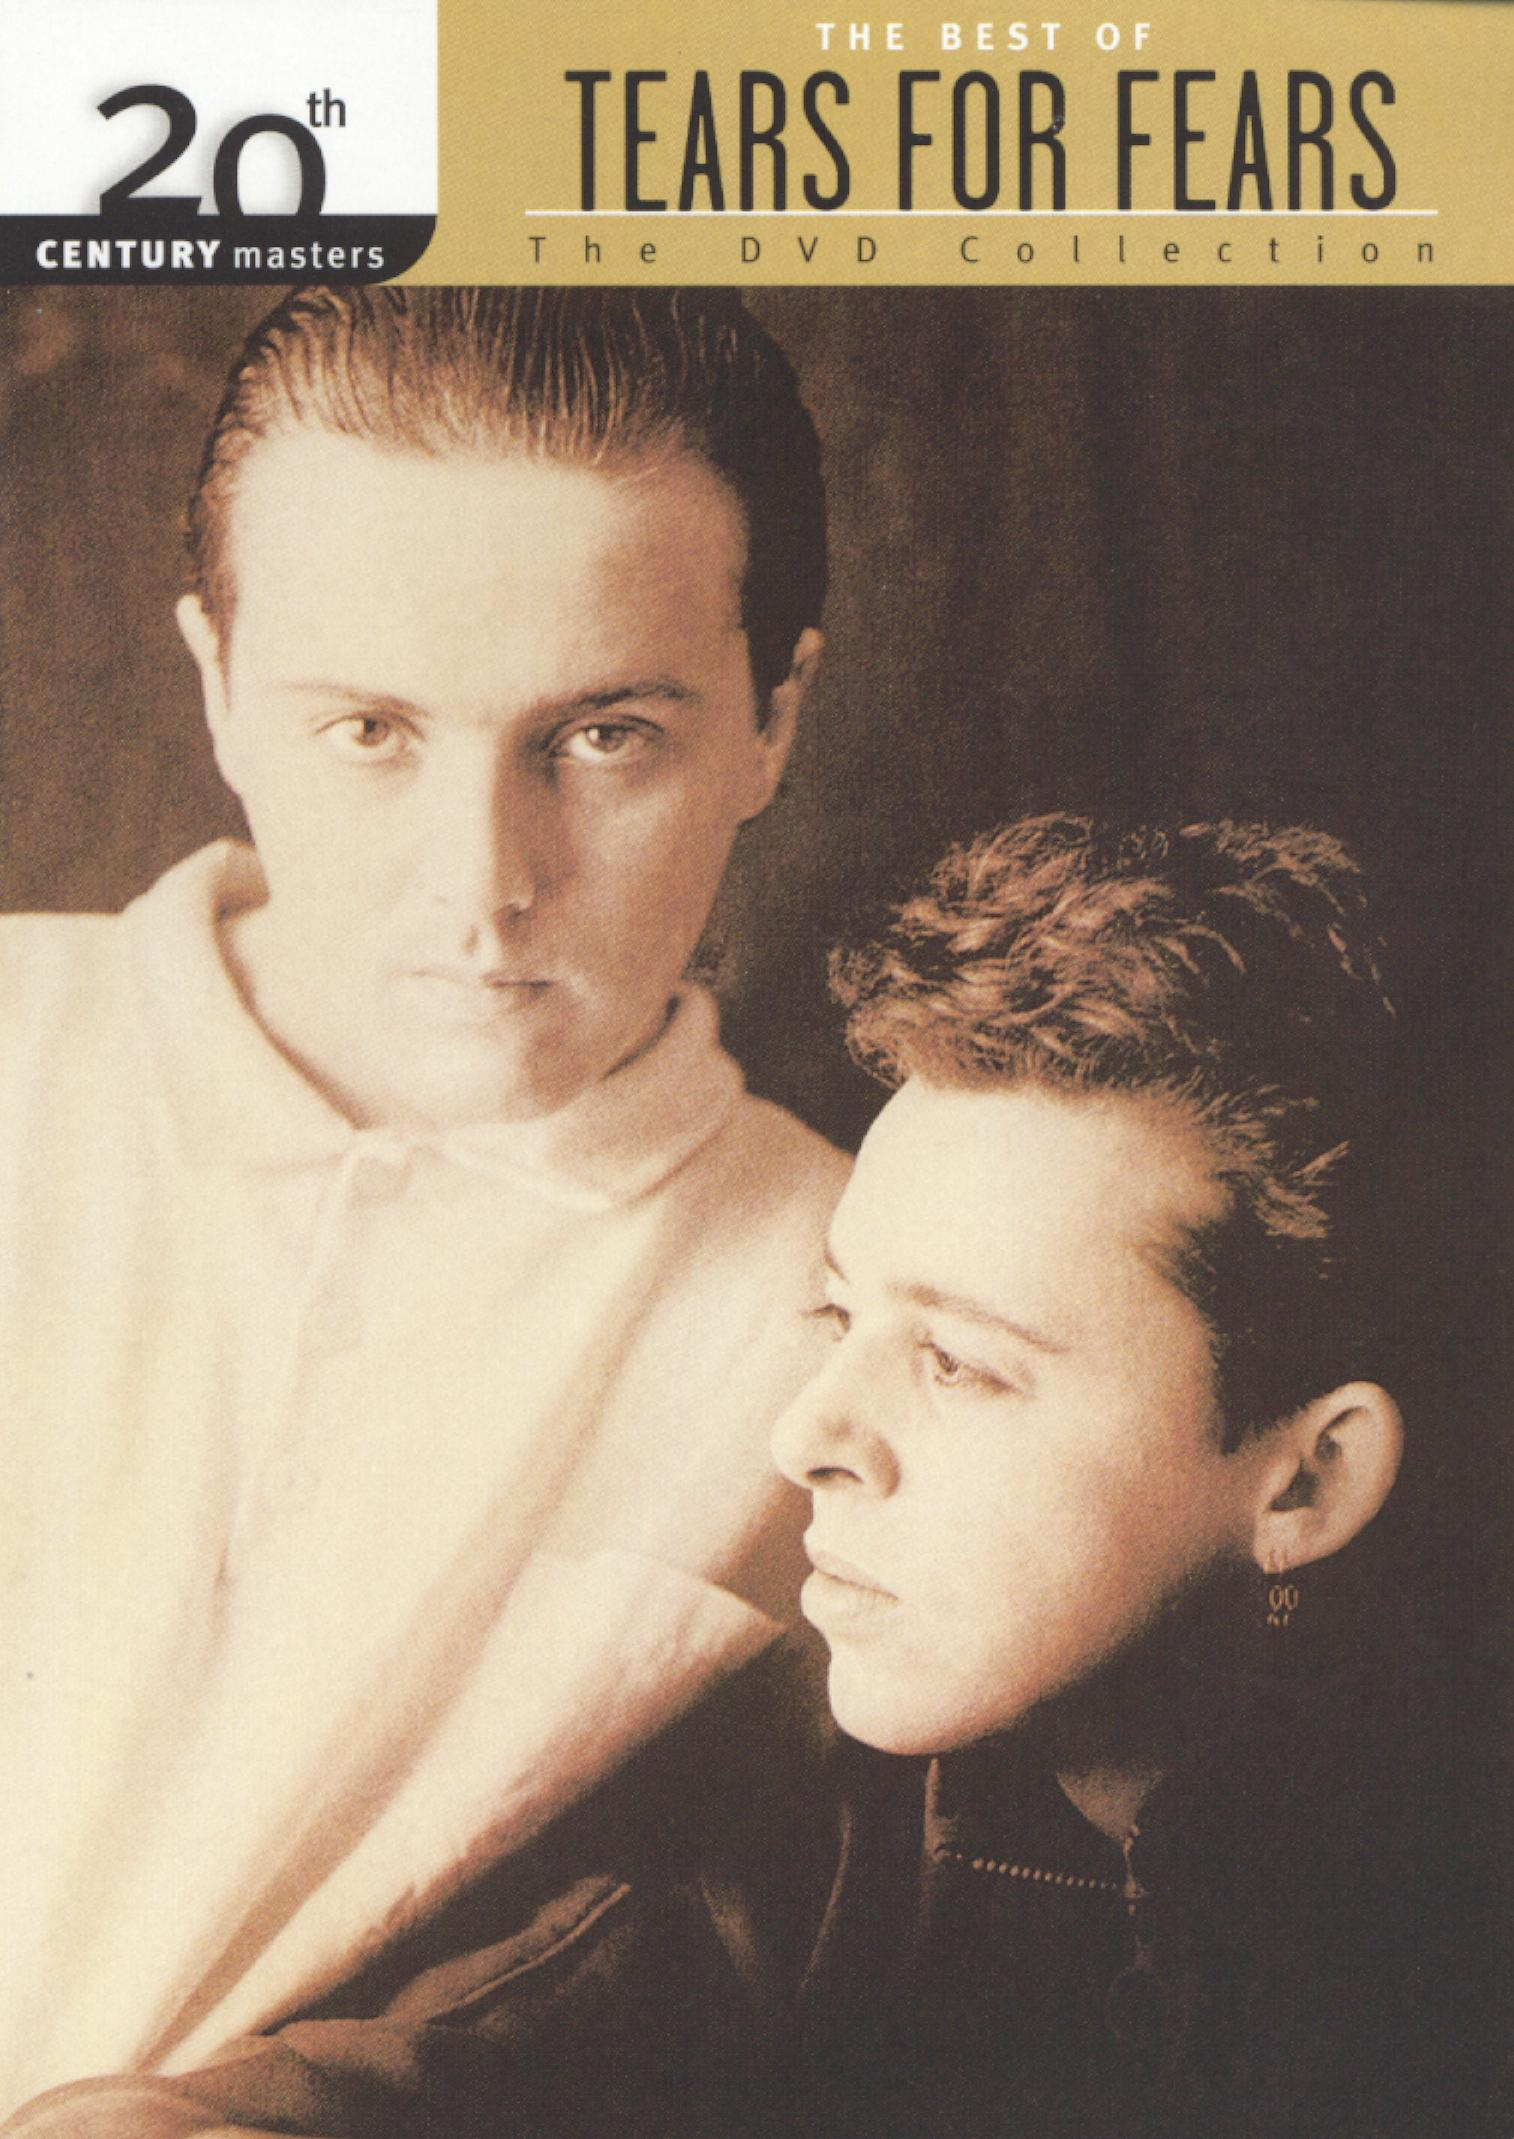 20th Century Masters: The Best of Tears for Fears